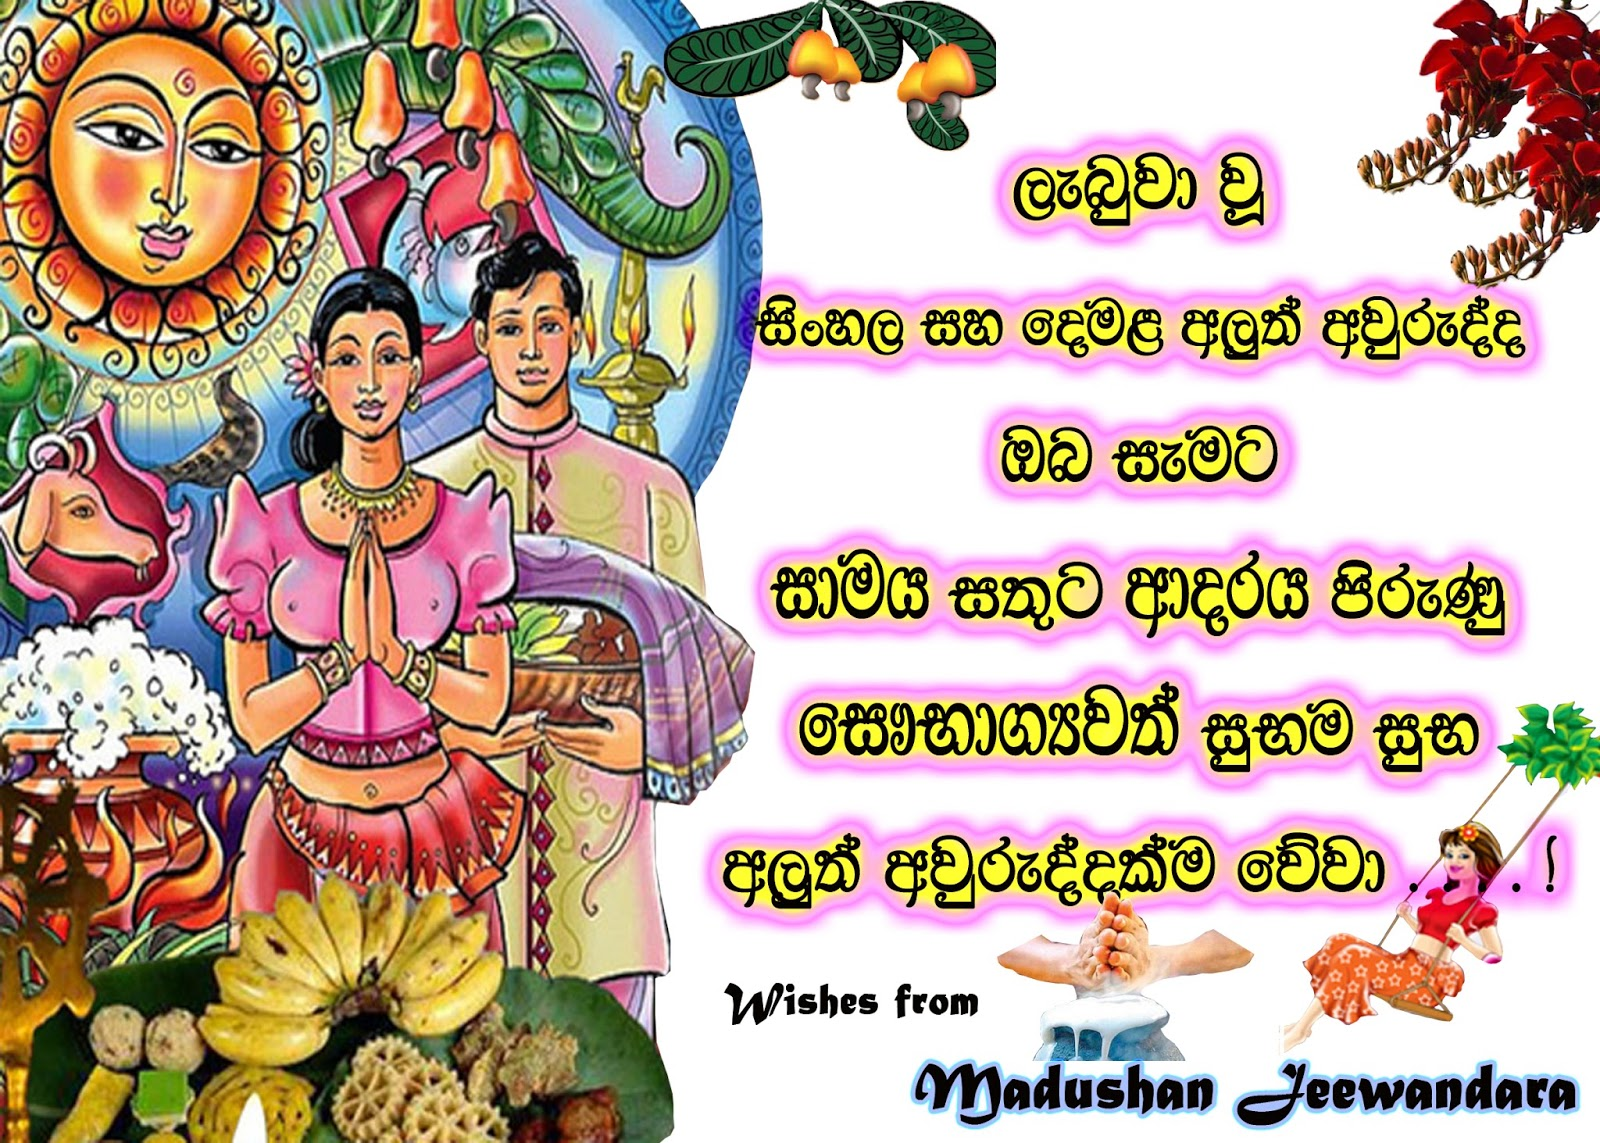 Sinhala New Year Sinhala Hindu New Year 2016